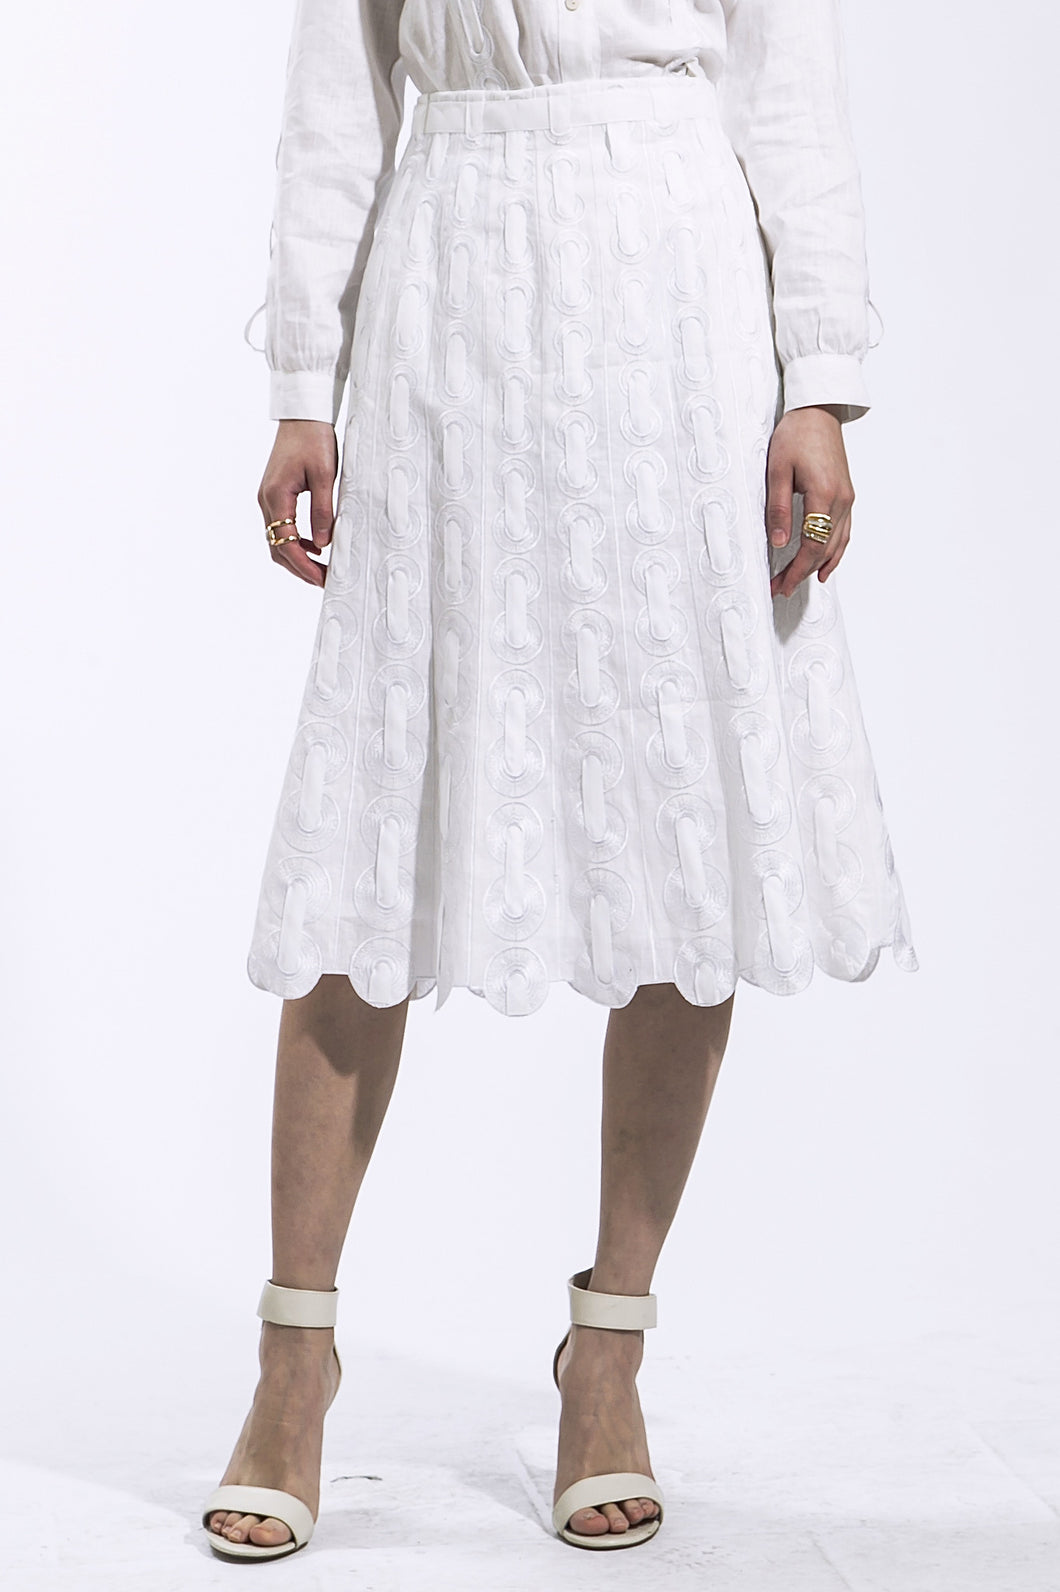 Ribbon Threaded Skirt (White) Style 1800